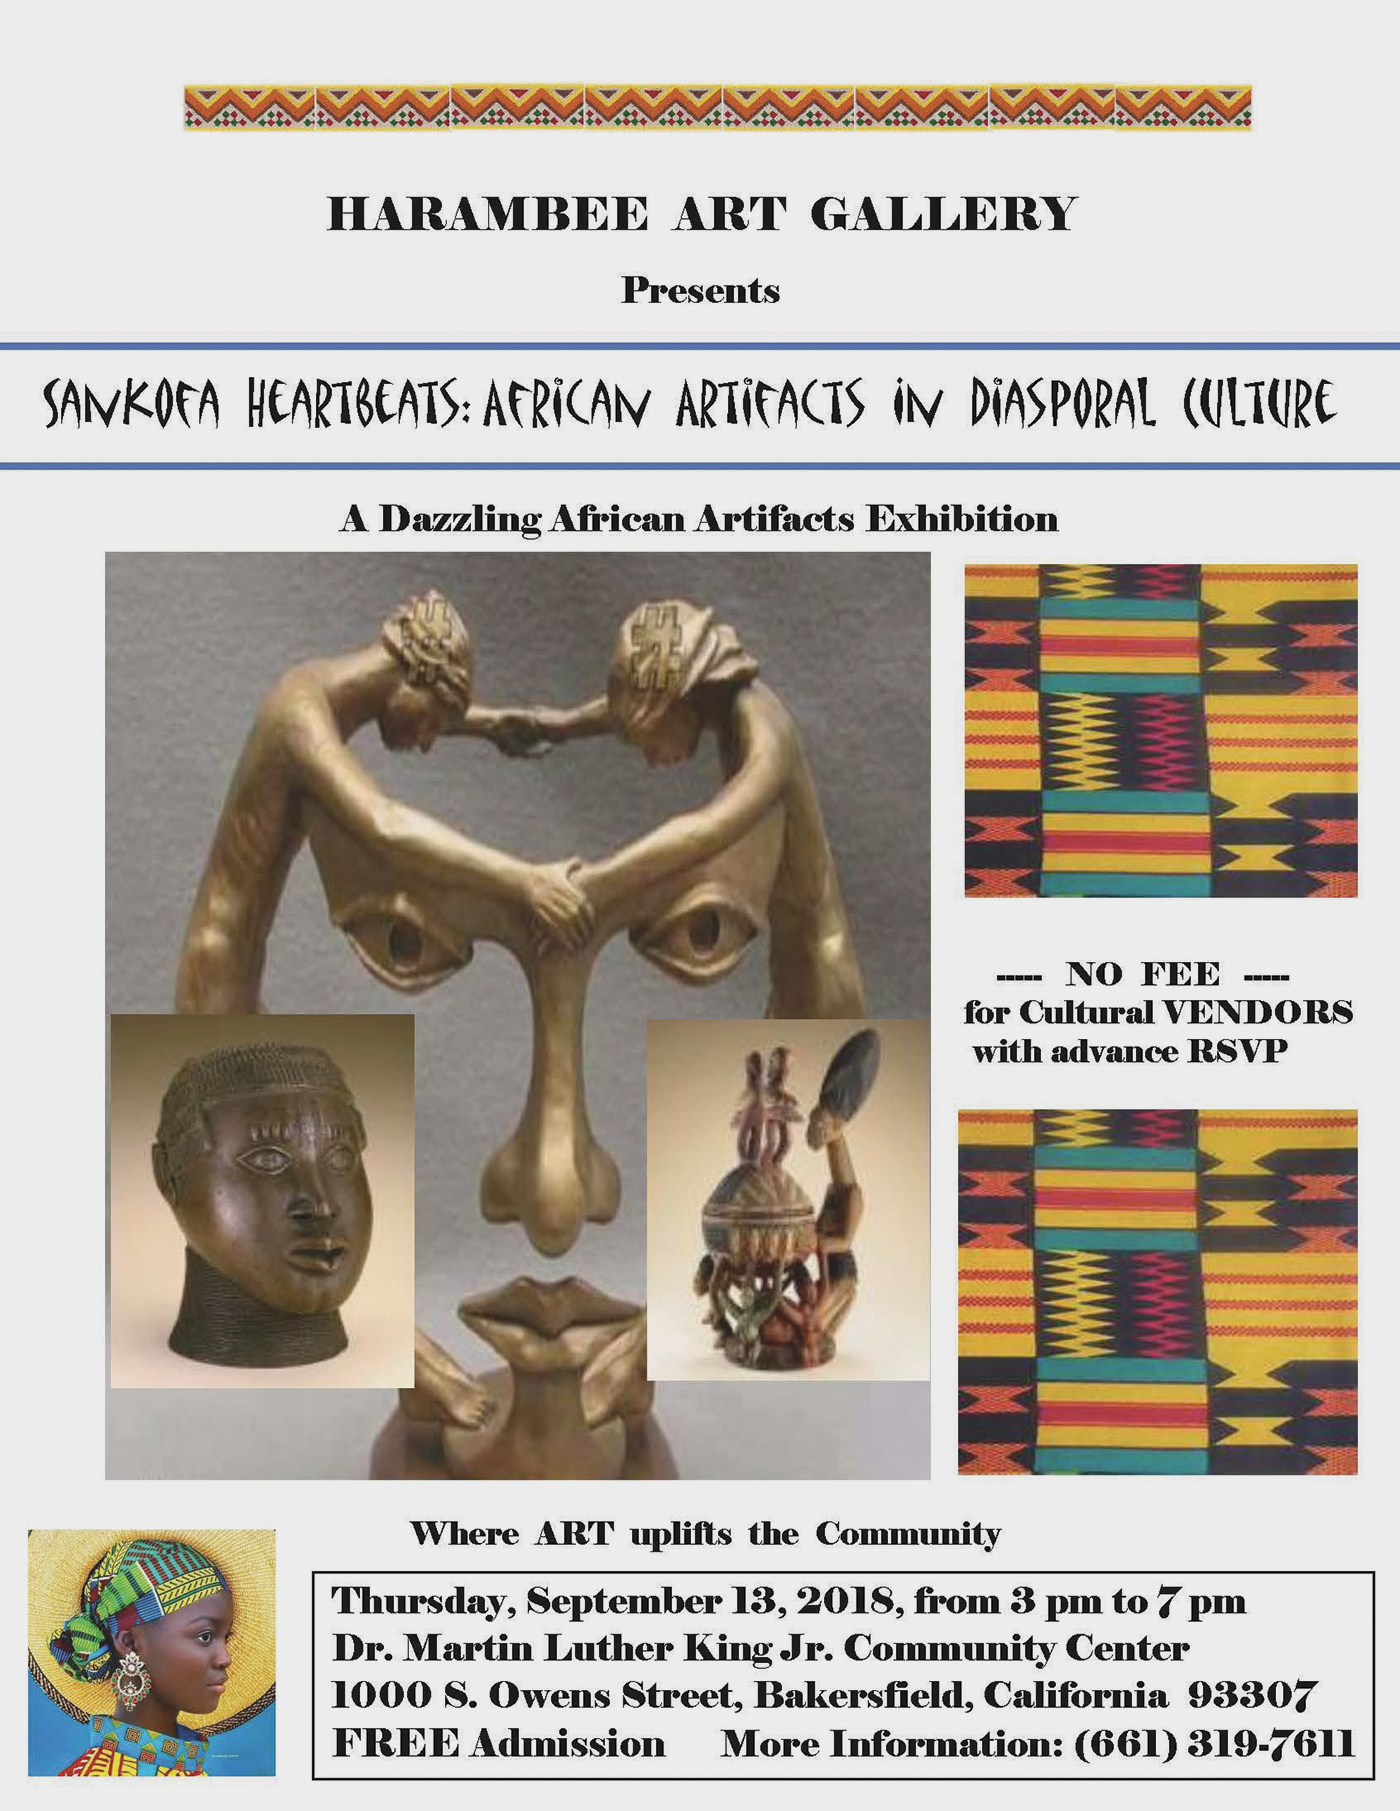 Cultural Images Matter- African Heritage In Diasporal Culture pic.jpg